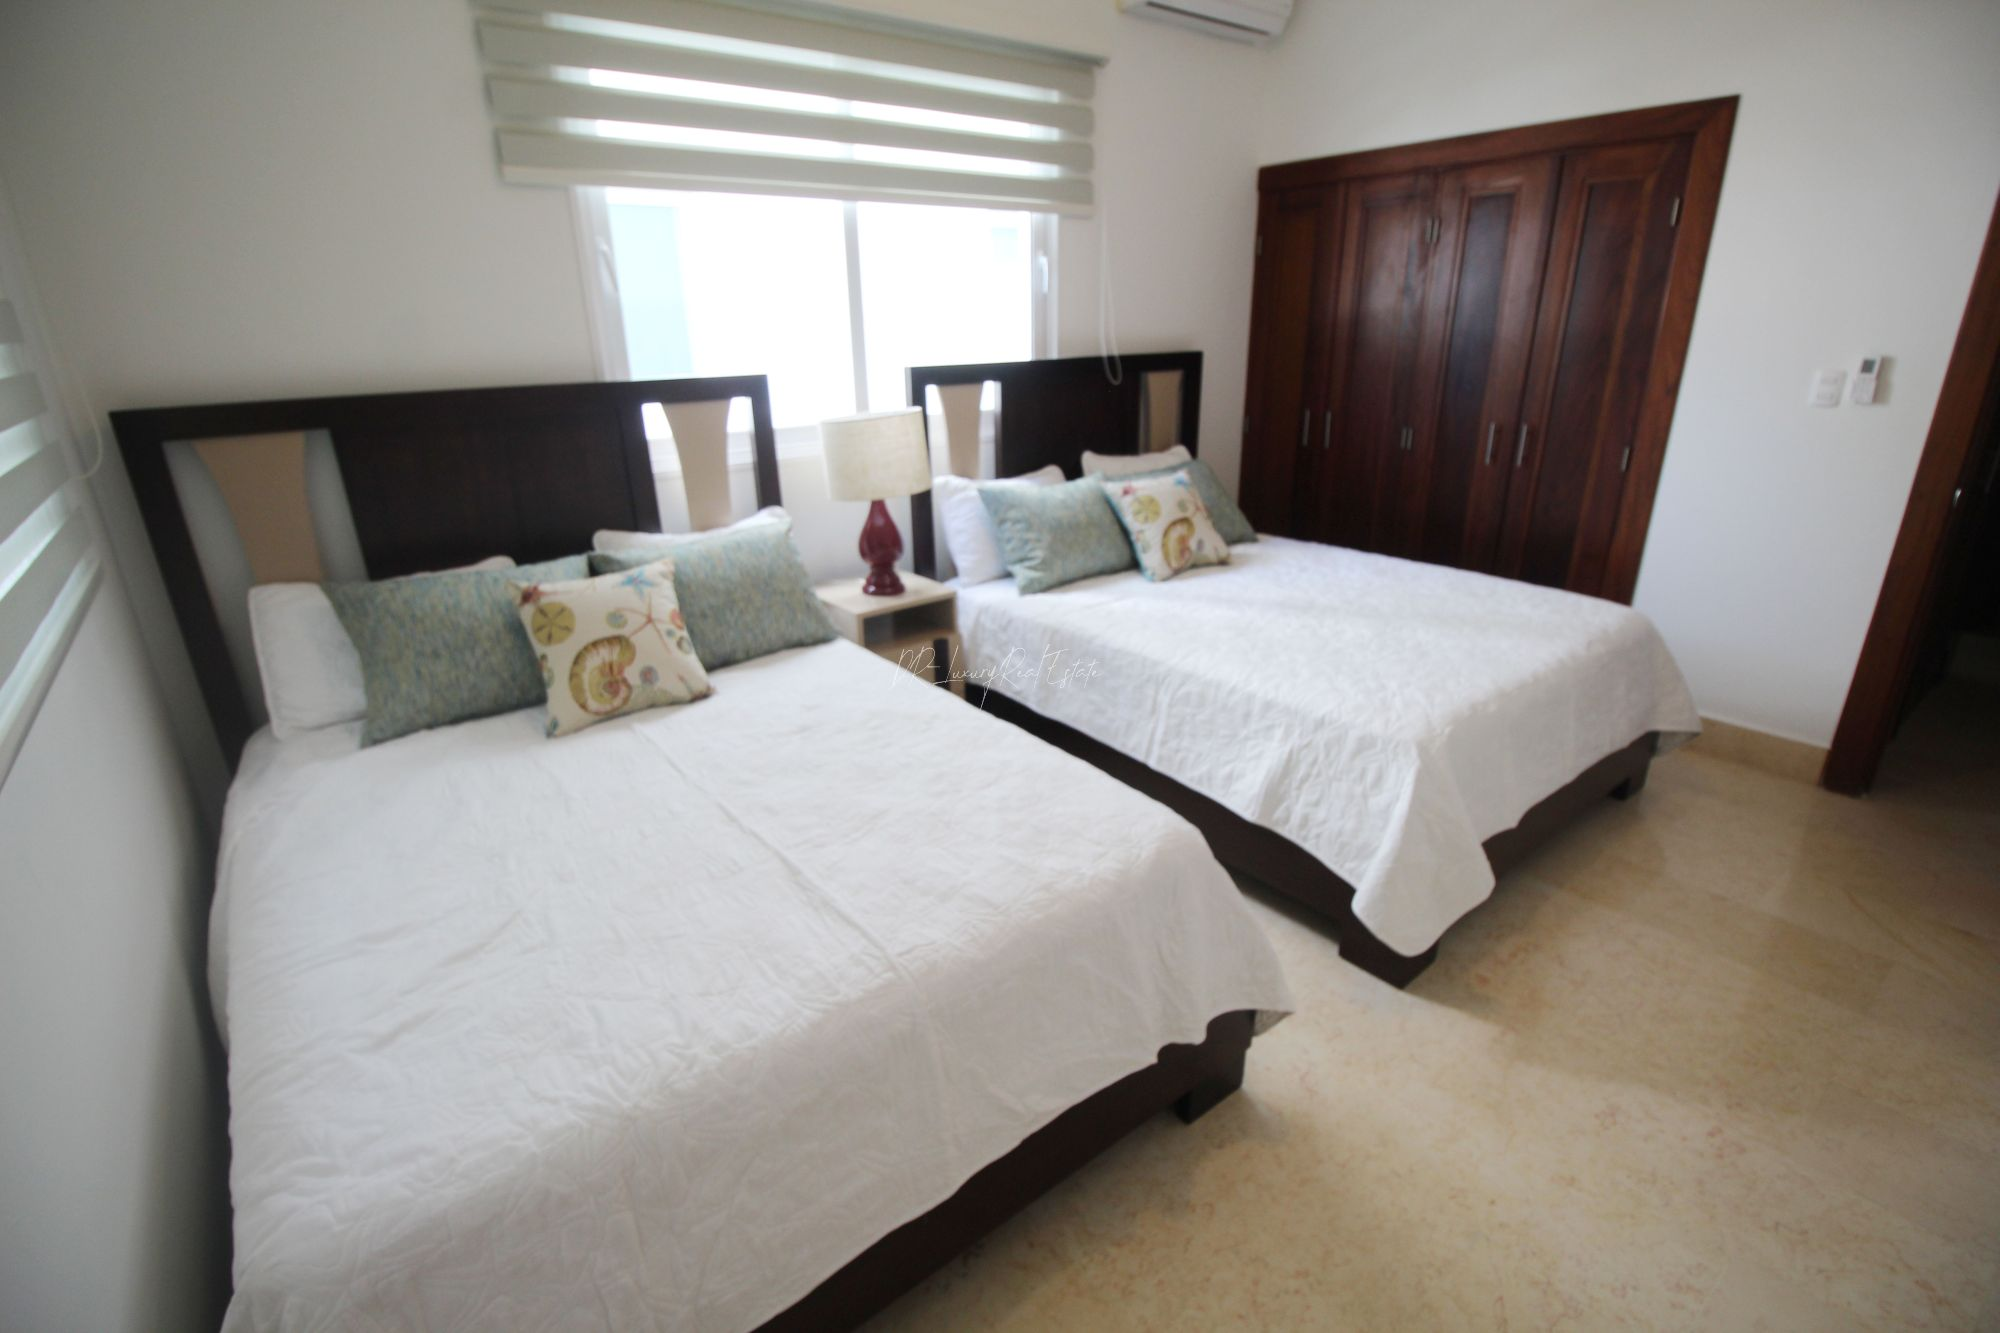 #10 Beautiful modern beachfront condo with 3 bedrooms